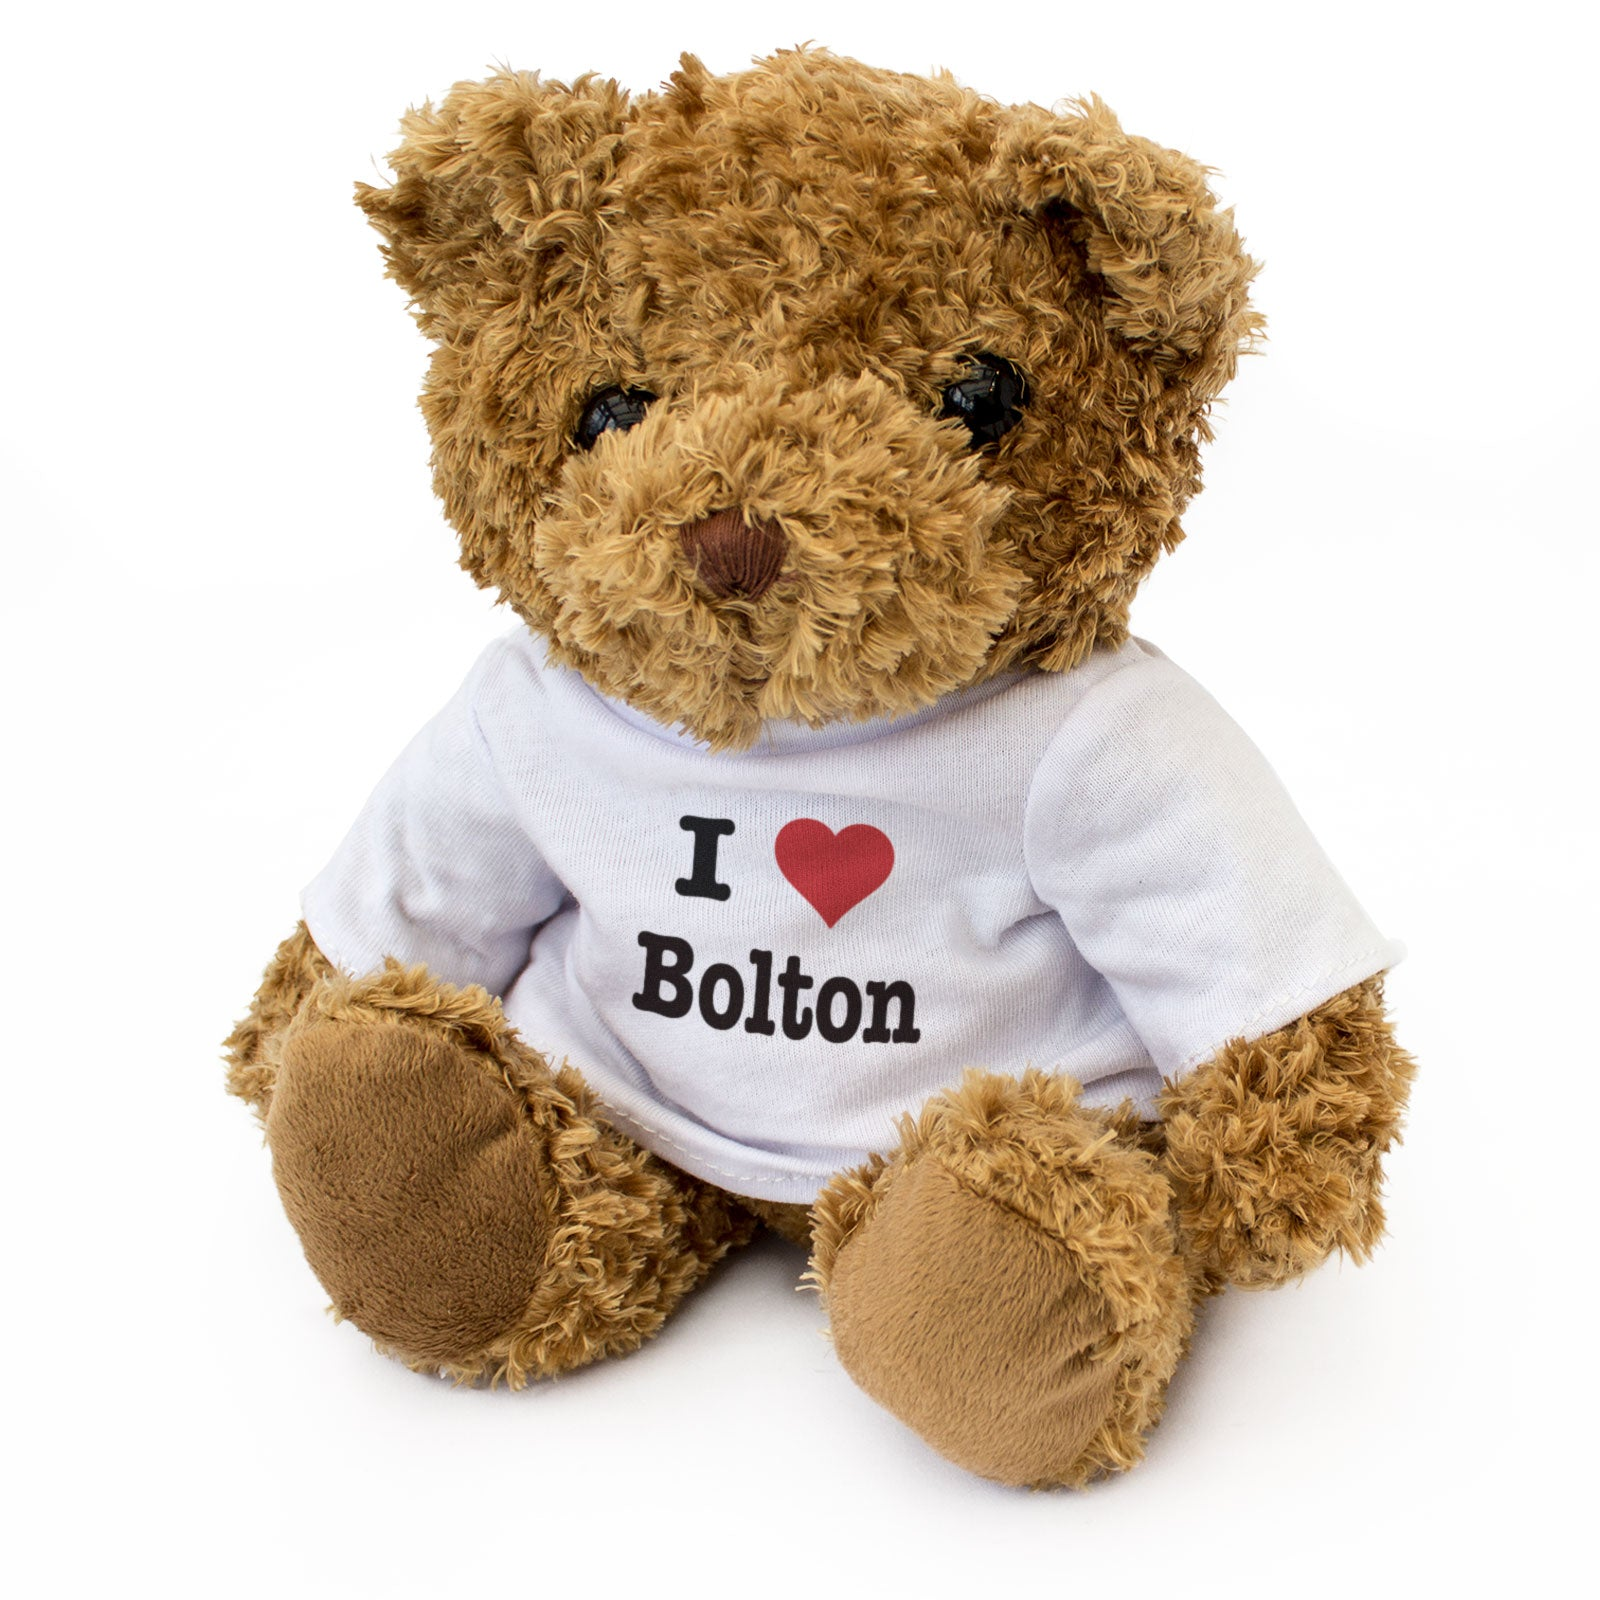 I Love Bolton - Teddy Bear